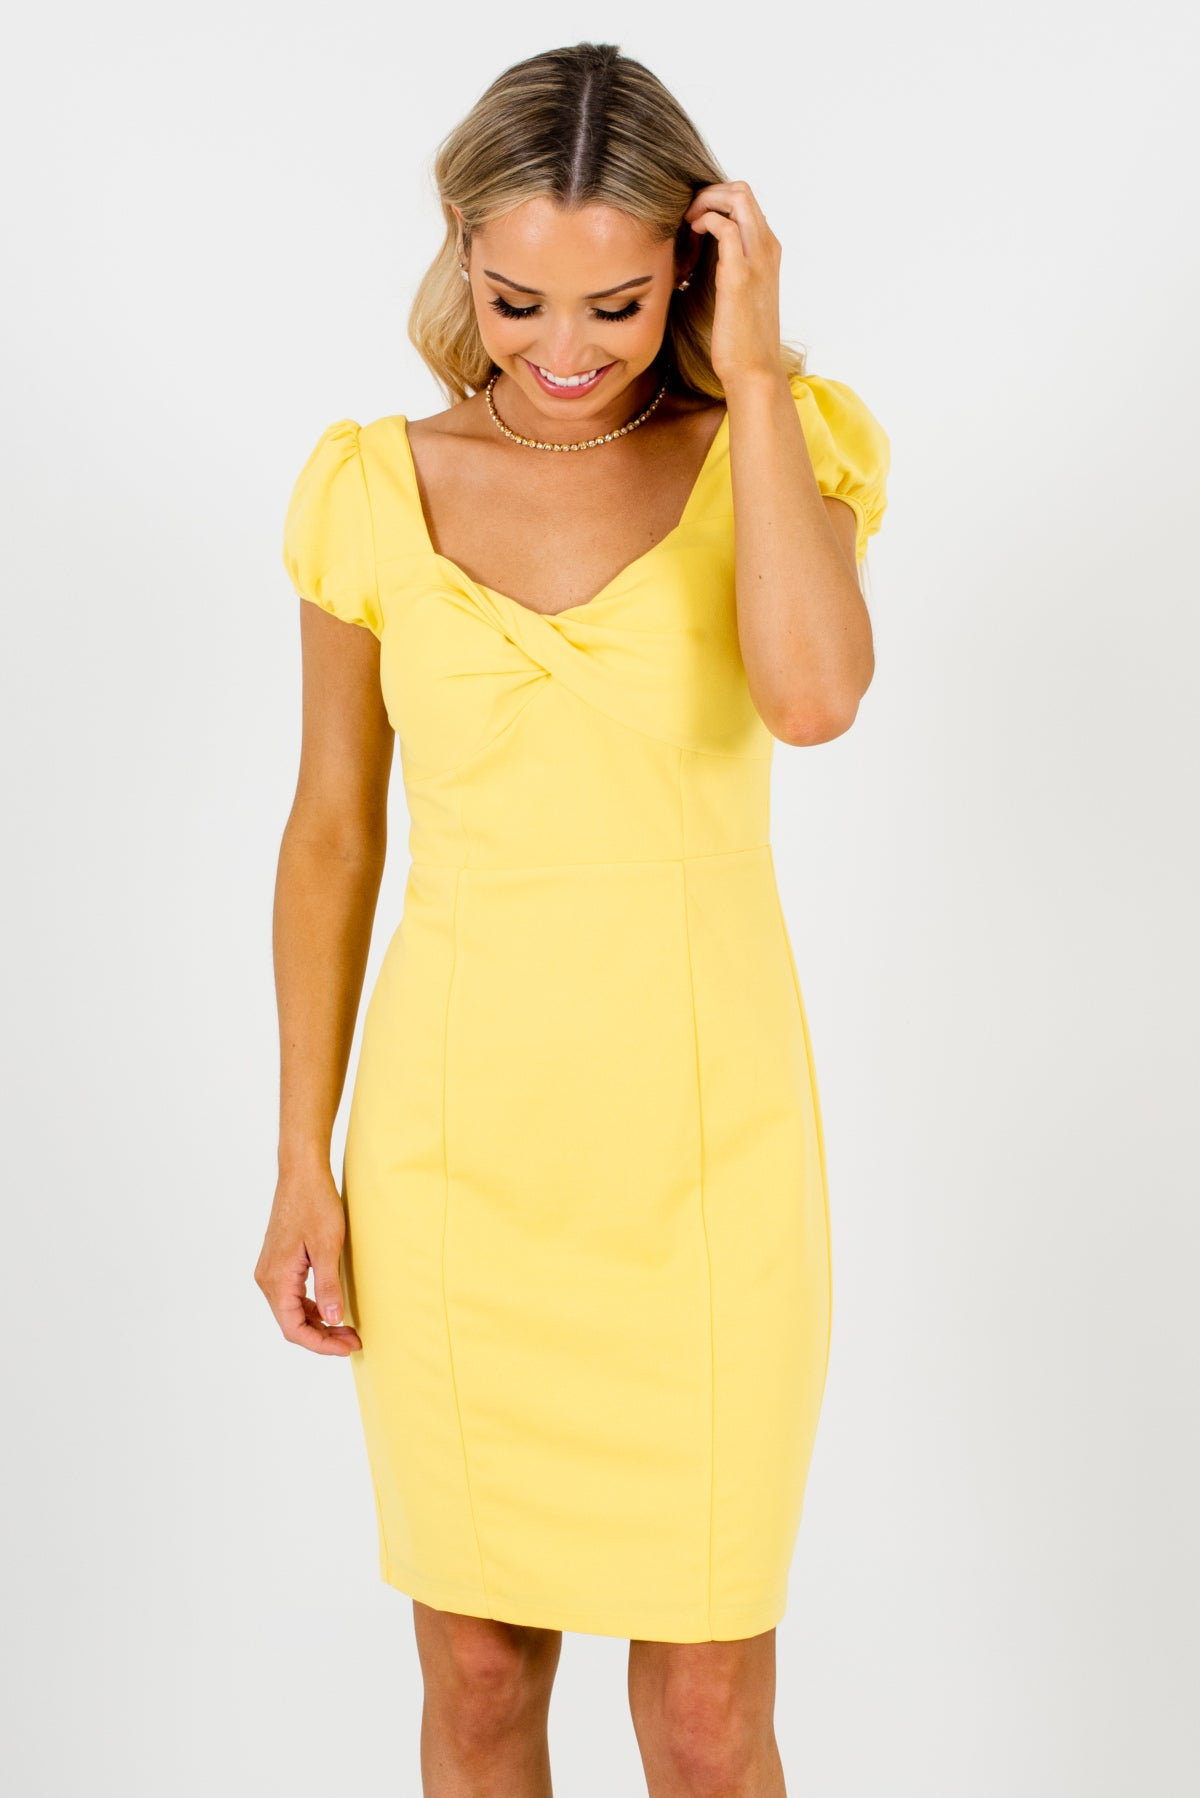 Yellow High-Quality Stretchy Boutique Mini Dresses for Women